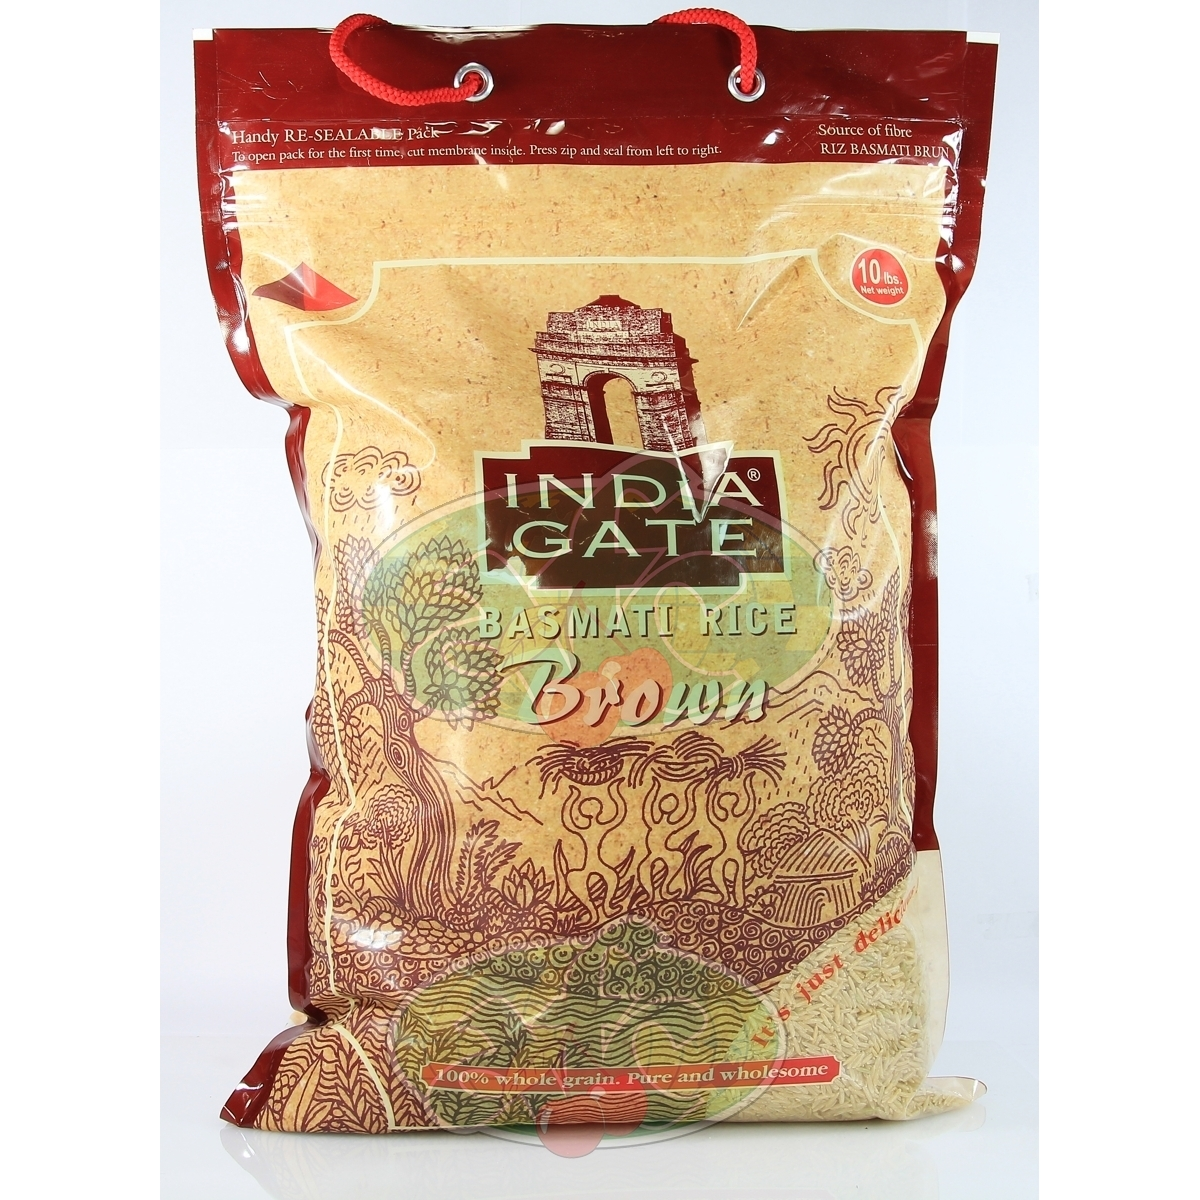 India Gate Basmati Rice Brown India Gate Basmati Rice